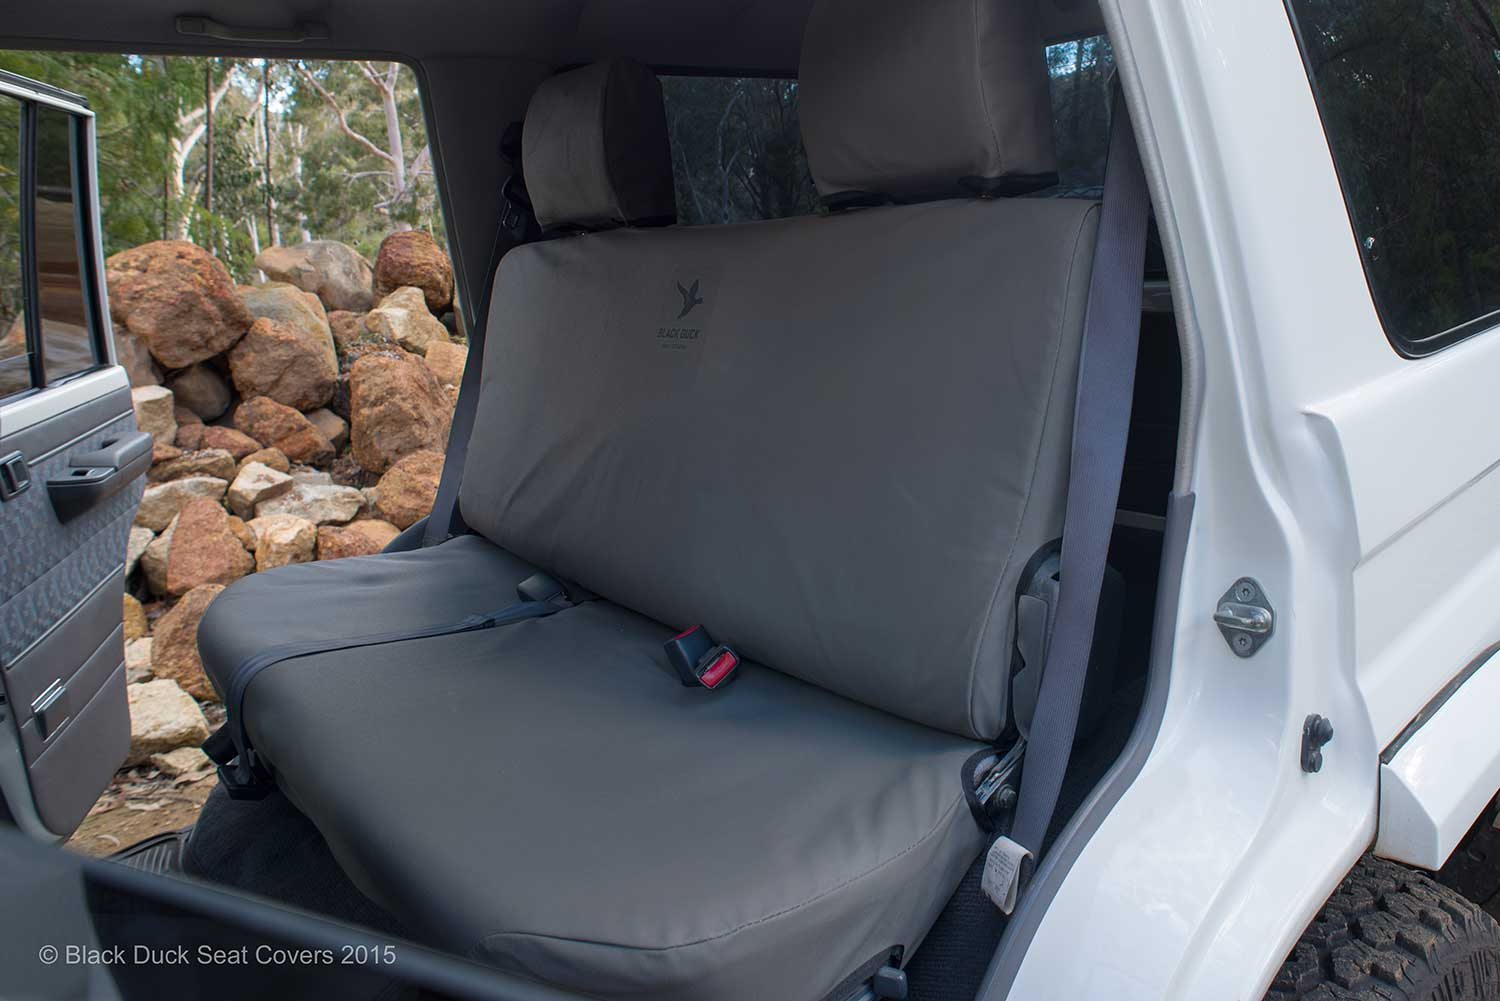 Black Duck Seat Cover LC704 Landcruiser 76 series wagon